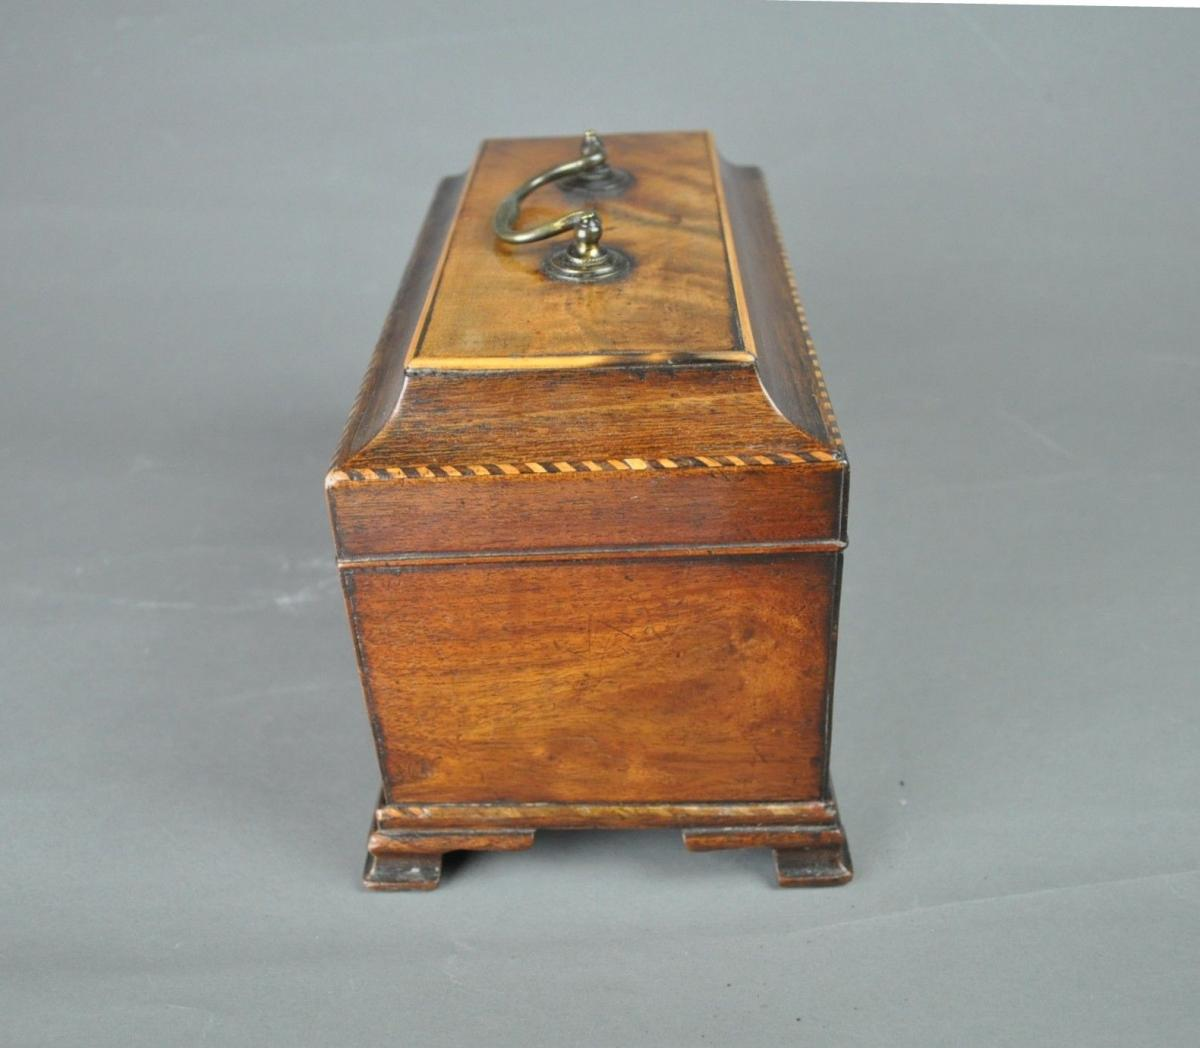 Chippendale period three compartment tea caddy